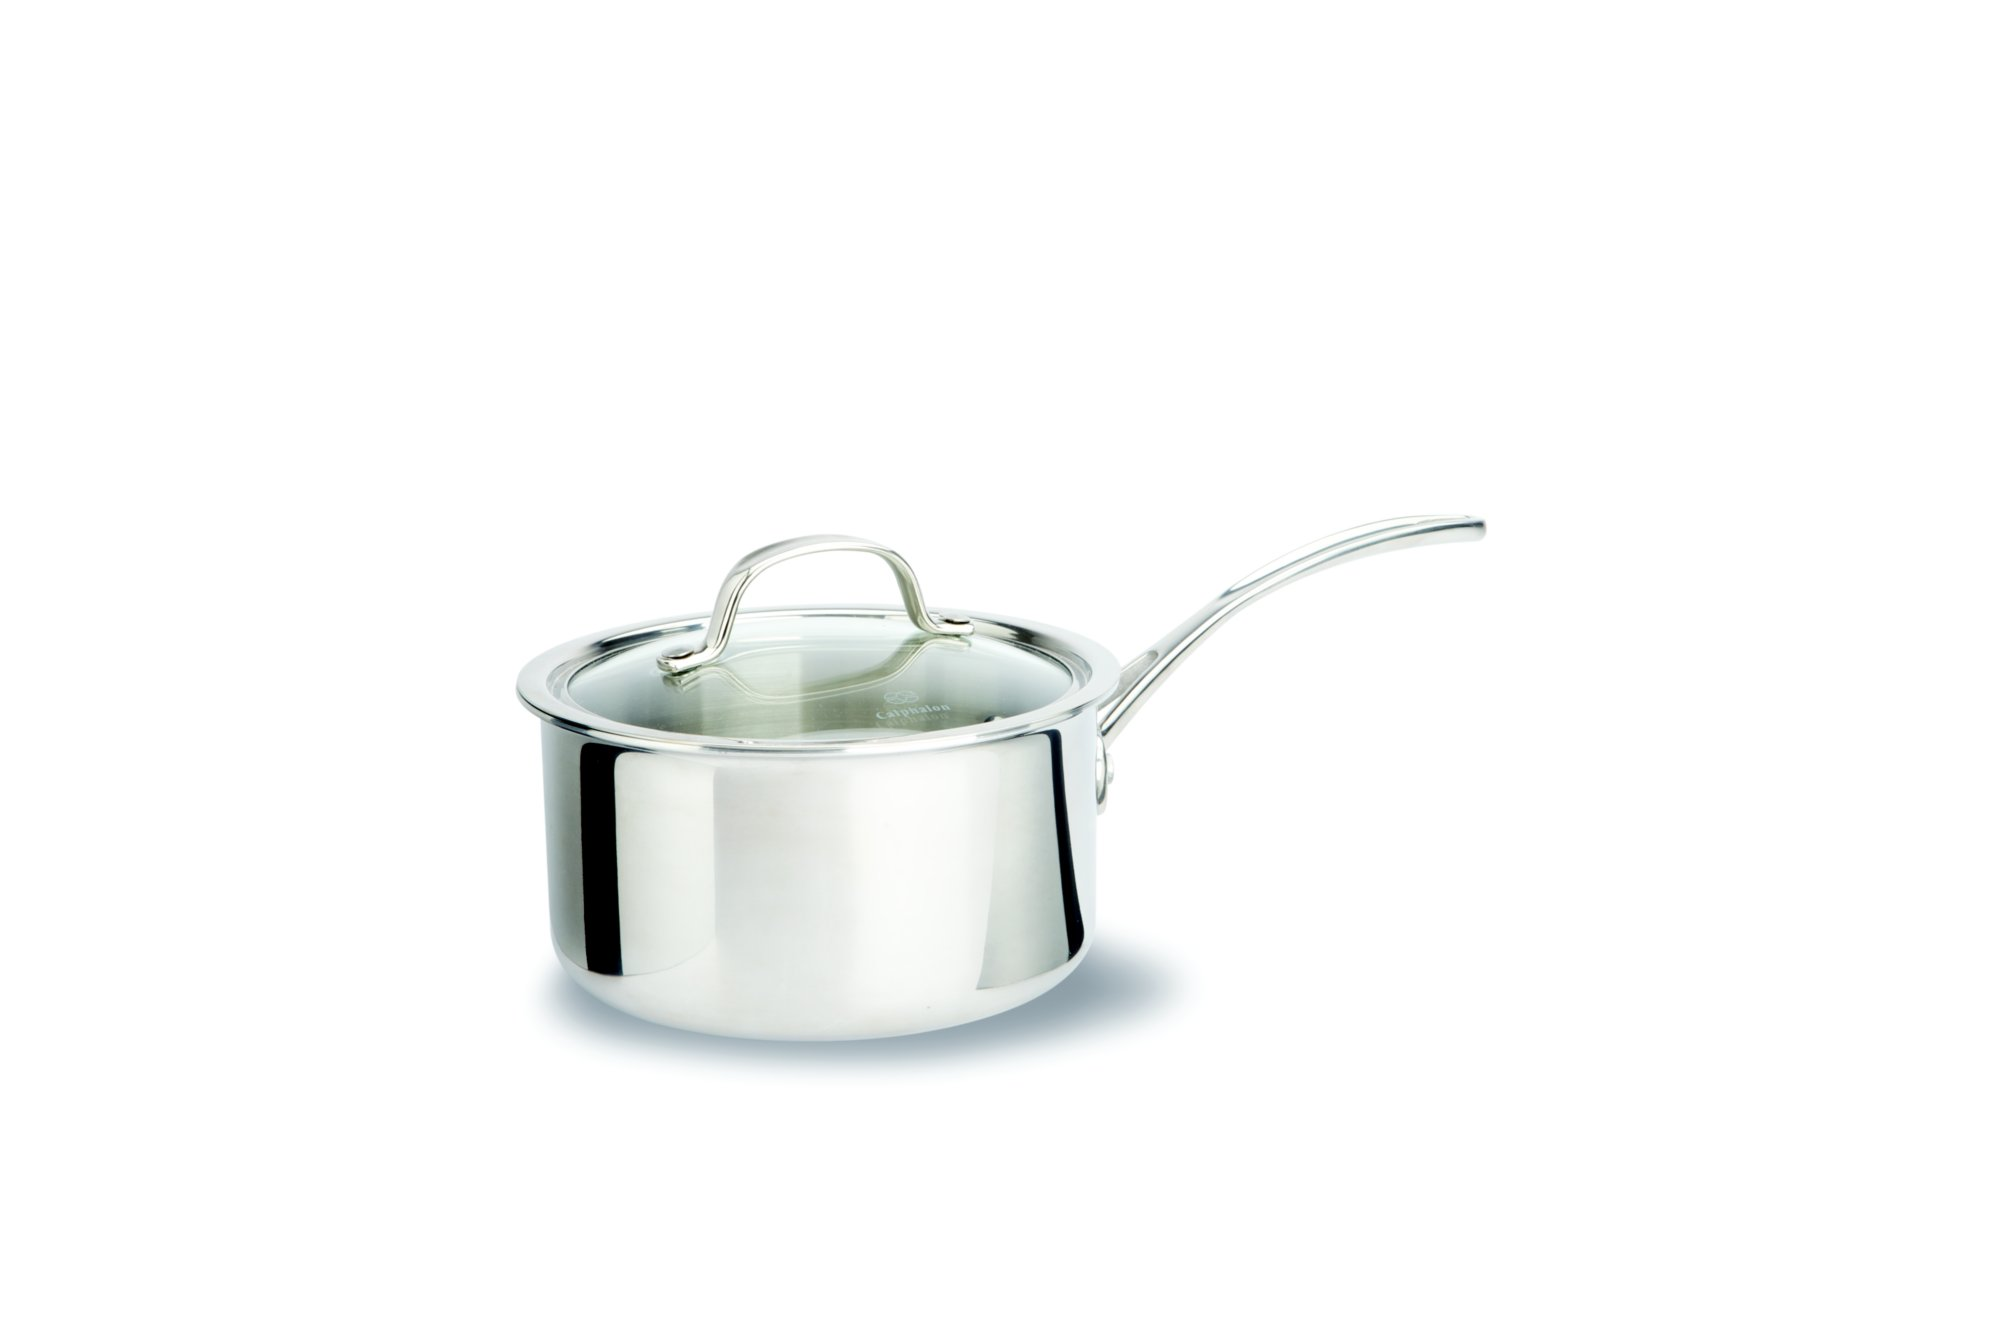 Calphalon Tri-Ply Stainless Steel 2.5-qt. Sauce Pan with Cover